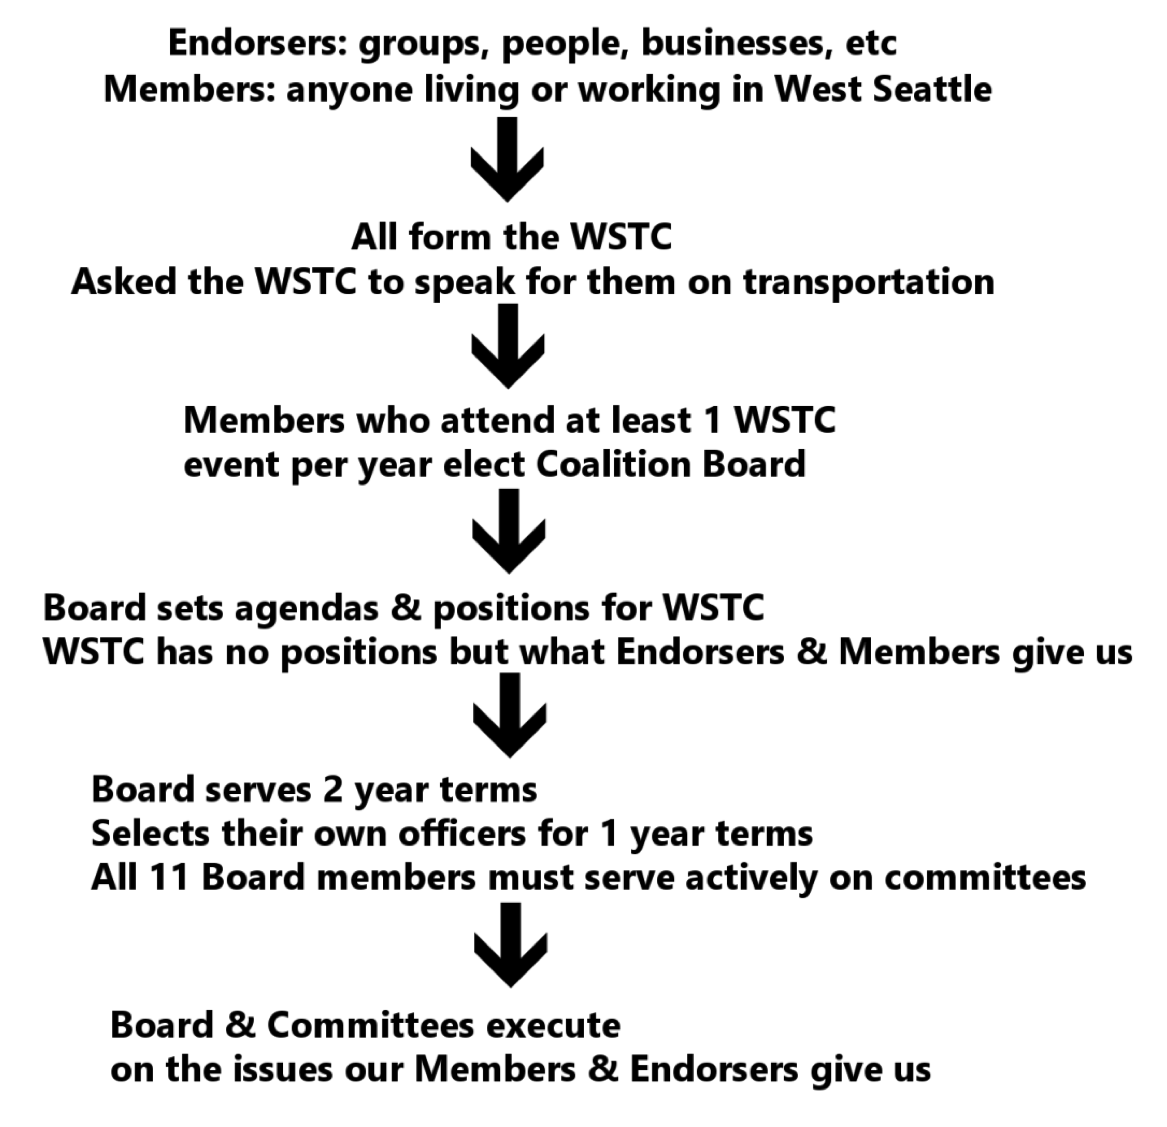 wstc structure 1